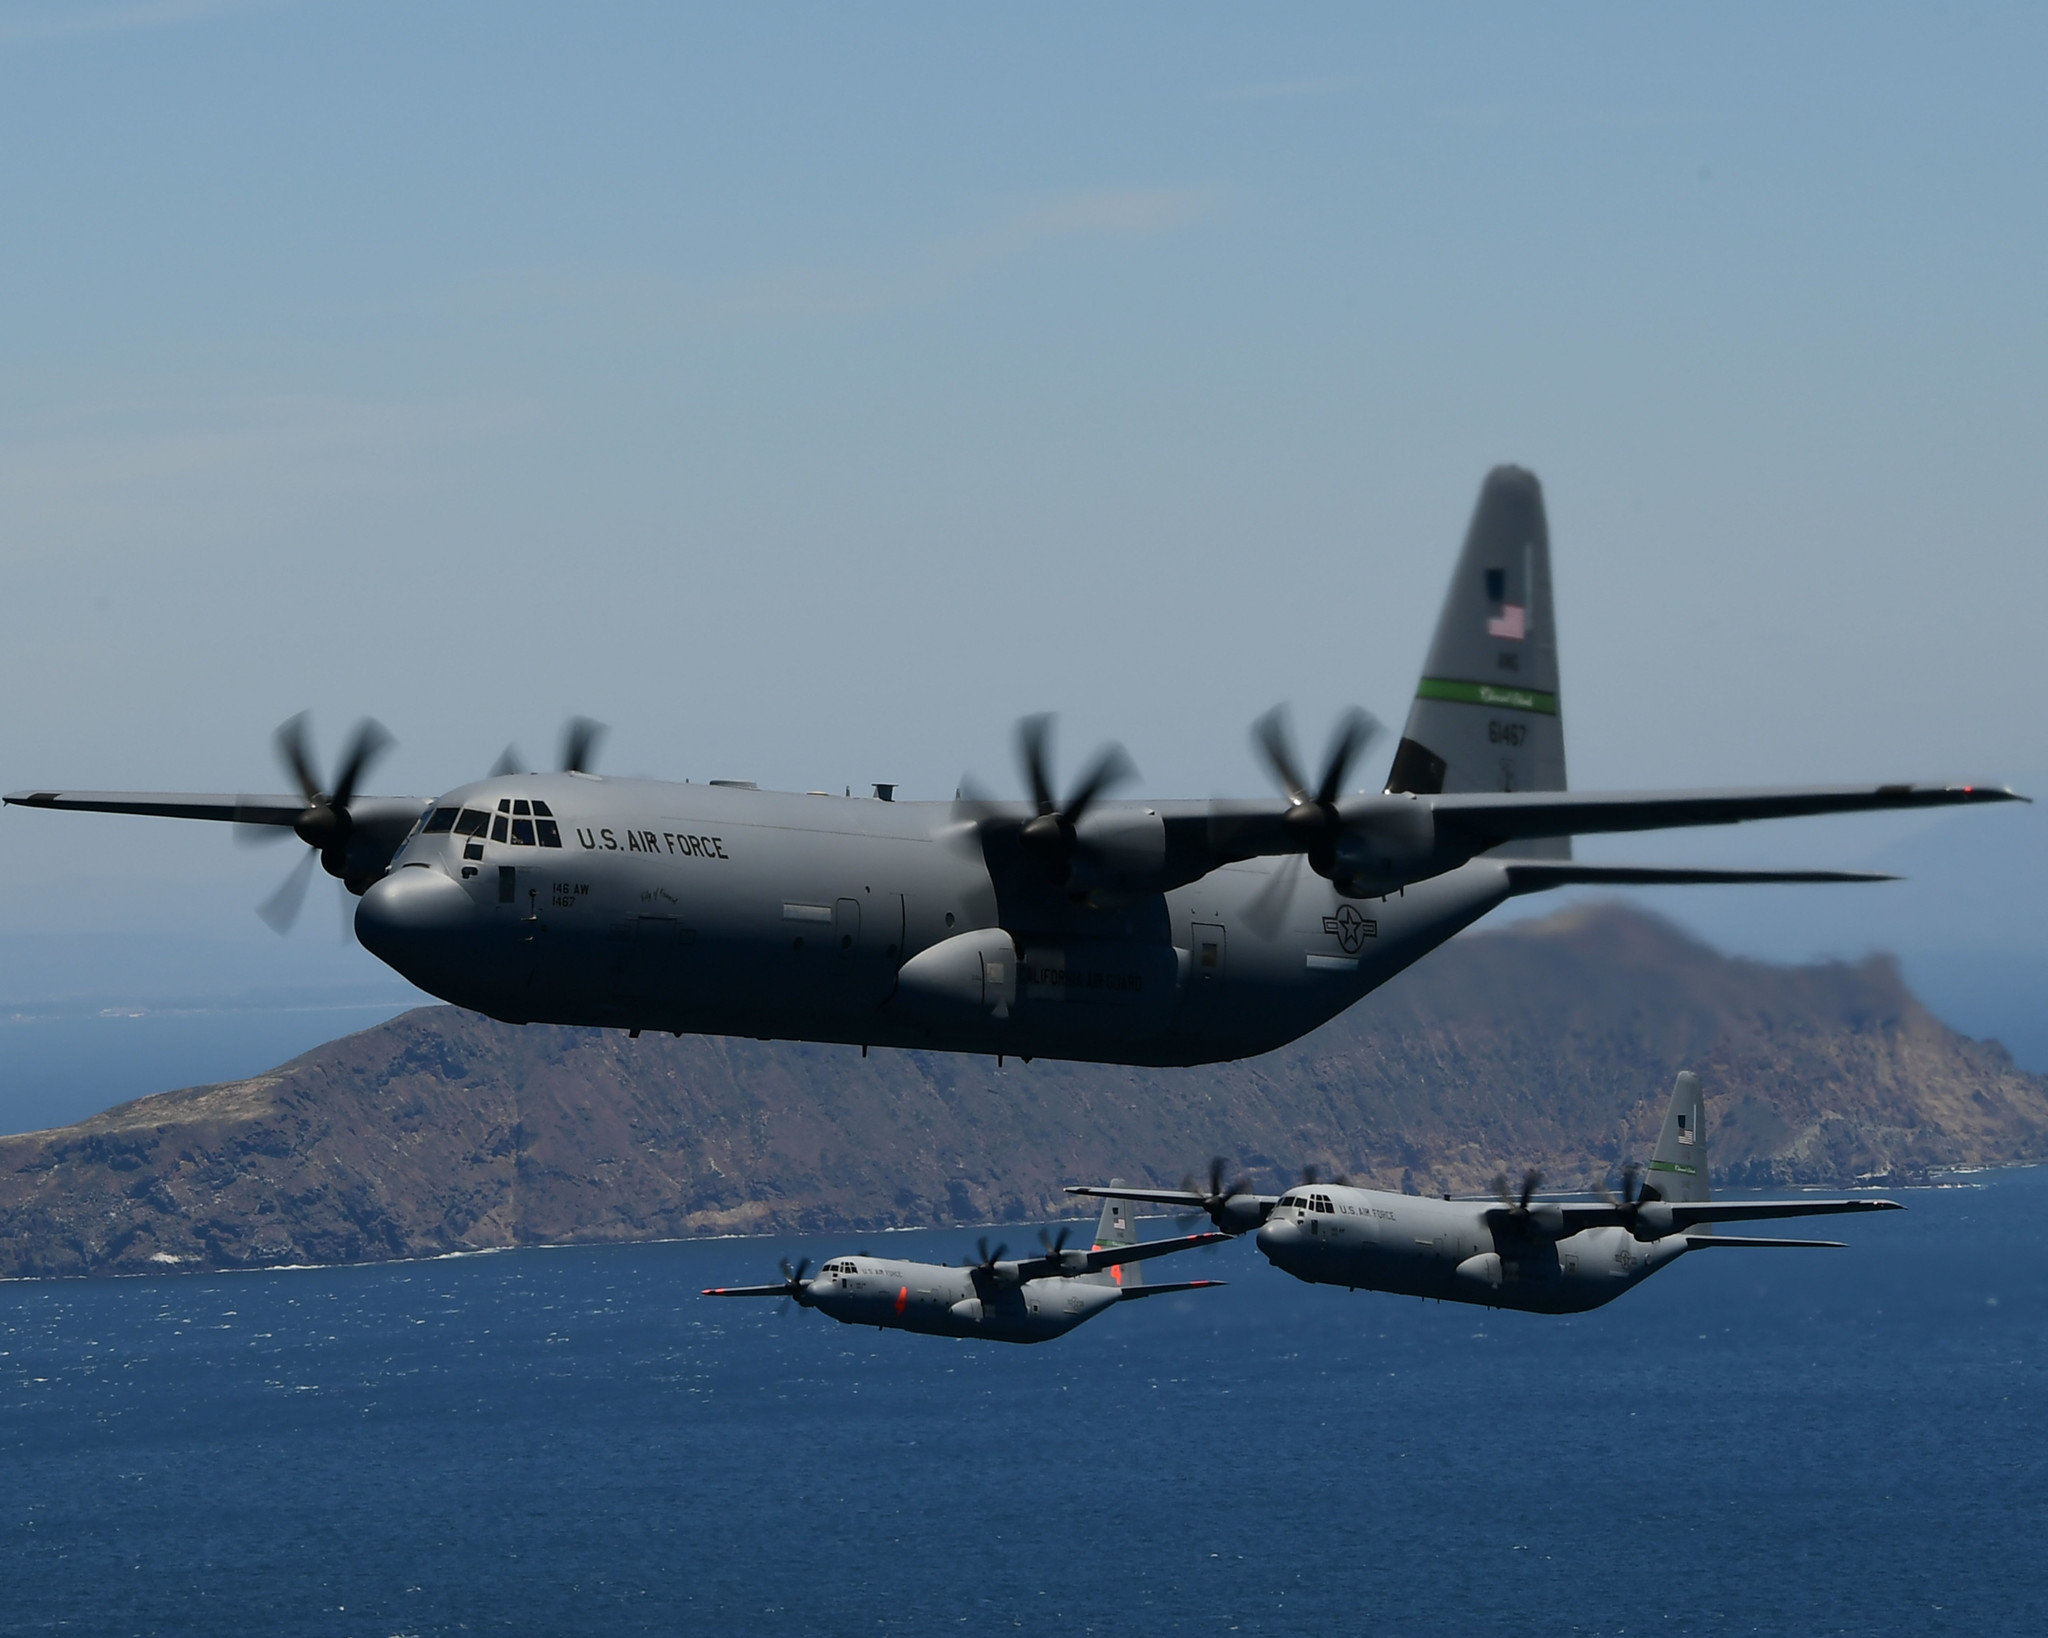 Four U.S. Air National Guard C-130J Super Hercules cargo aircraft from the California Air National Guard's 115th Airlift Squadron, 146th Airlift Wing, Port Hueneme, California, fly in formation during low-level tactical training near Anacapa Island, Calif., May 14, 2020. The tactical training was combined with a flyover a salute by the military to honor medical professionals and other essential workers serving on the front line of the COVID-19 pandemic. (Tech. Sgt. Nieko Carzis/Air National Guard)